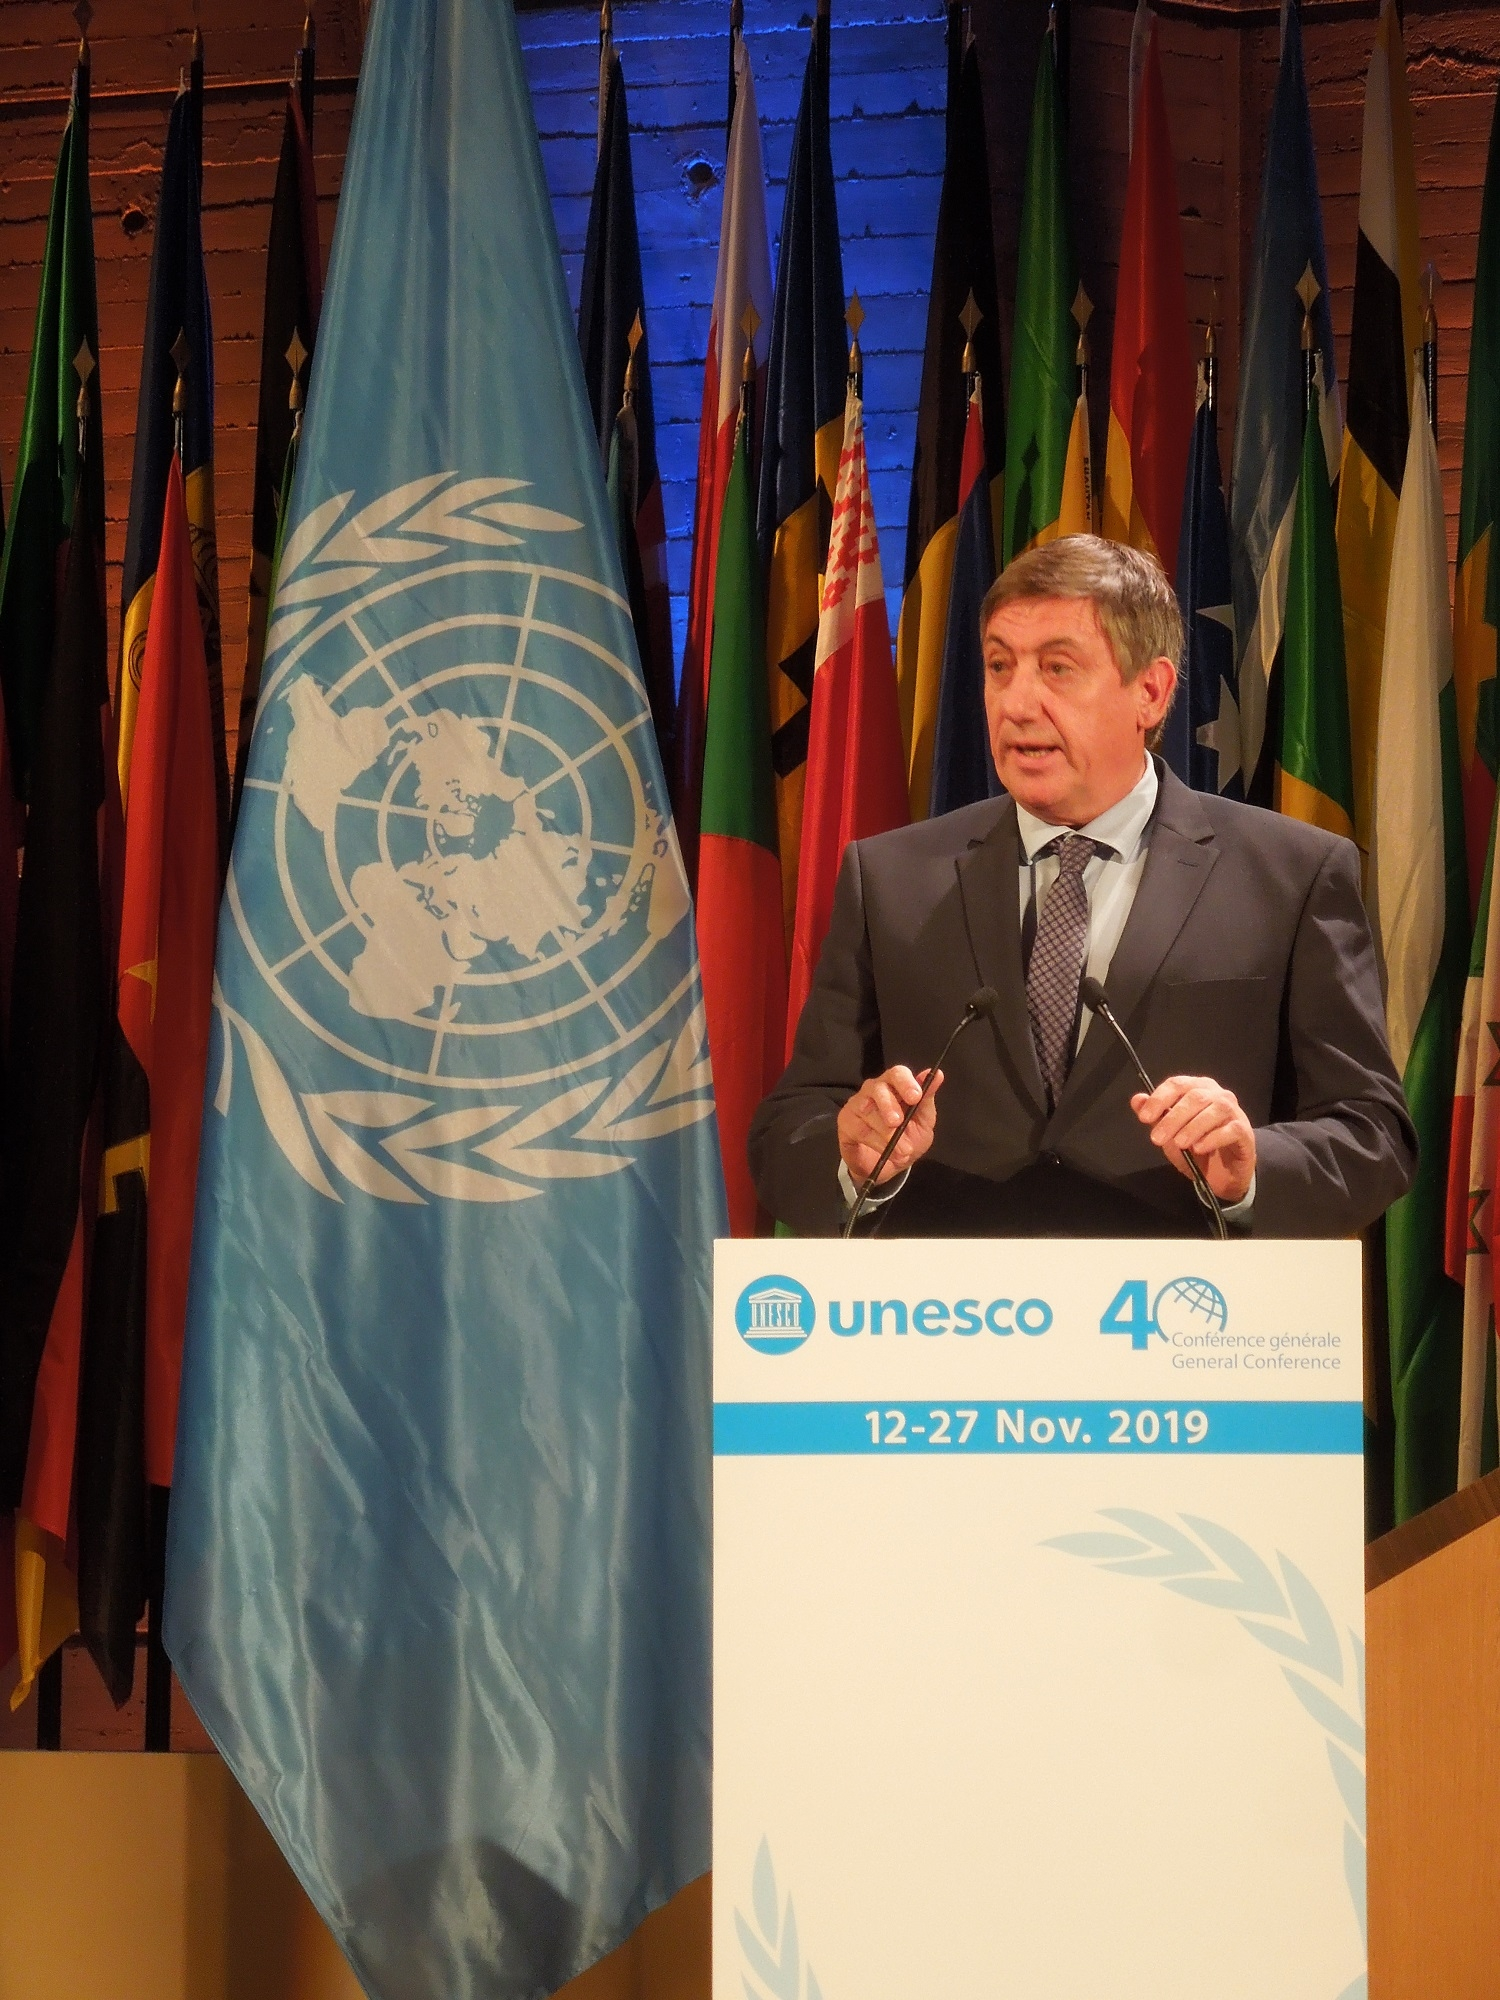 Minister-president Jambon at  Unesco General Conference  2019